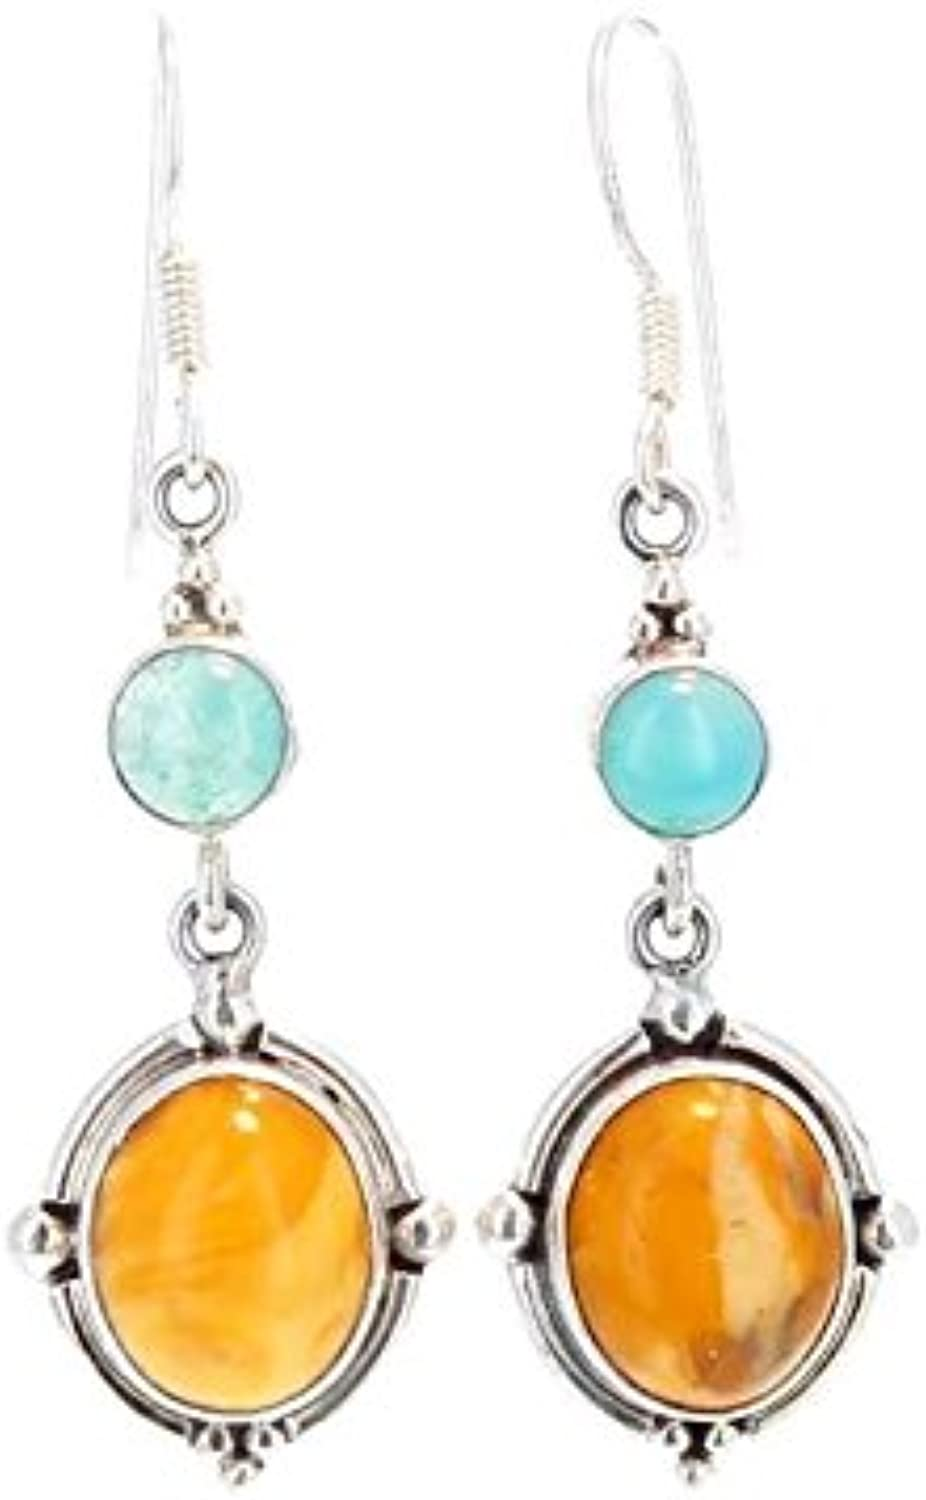 grandes ahorros AMBER and GEM SILICA EARRINGS EARRINGS EARRINGS STERLING  ventas directas de fábrica